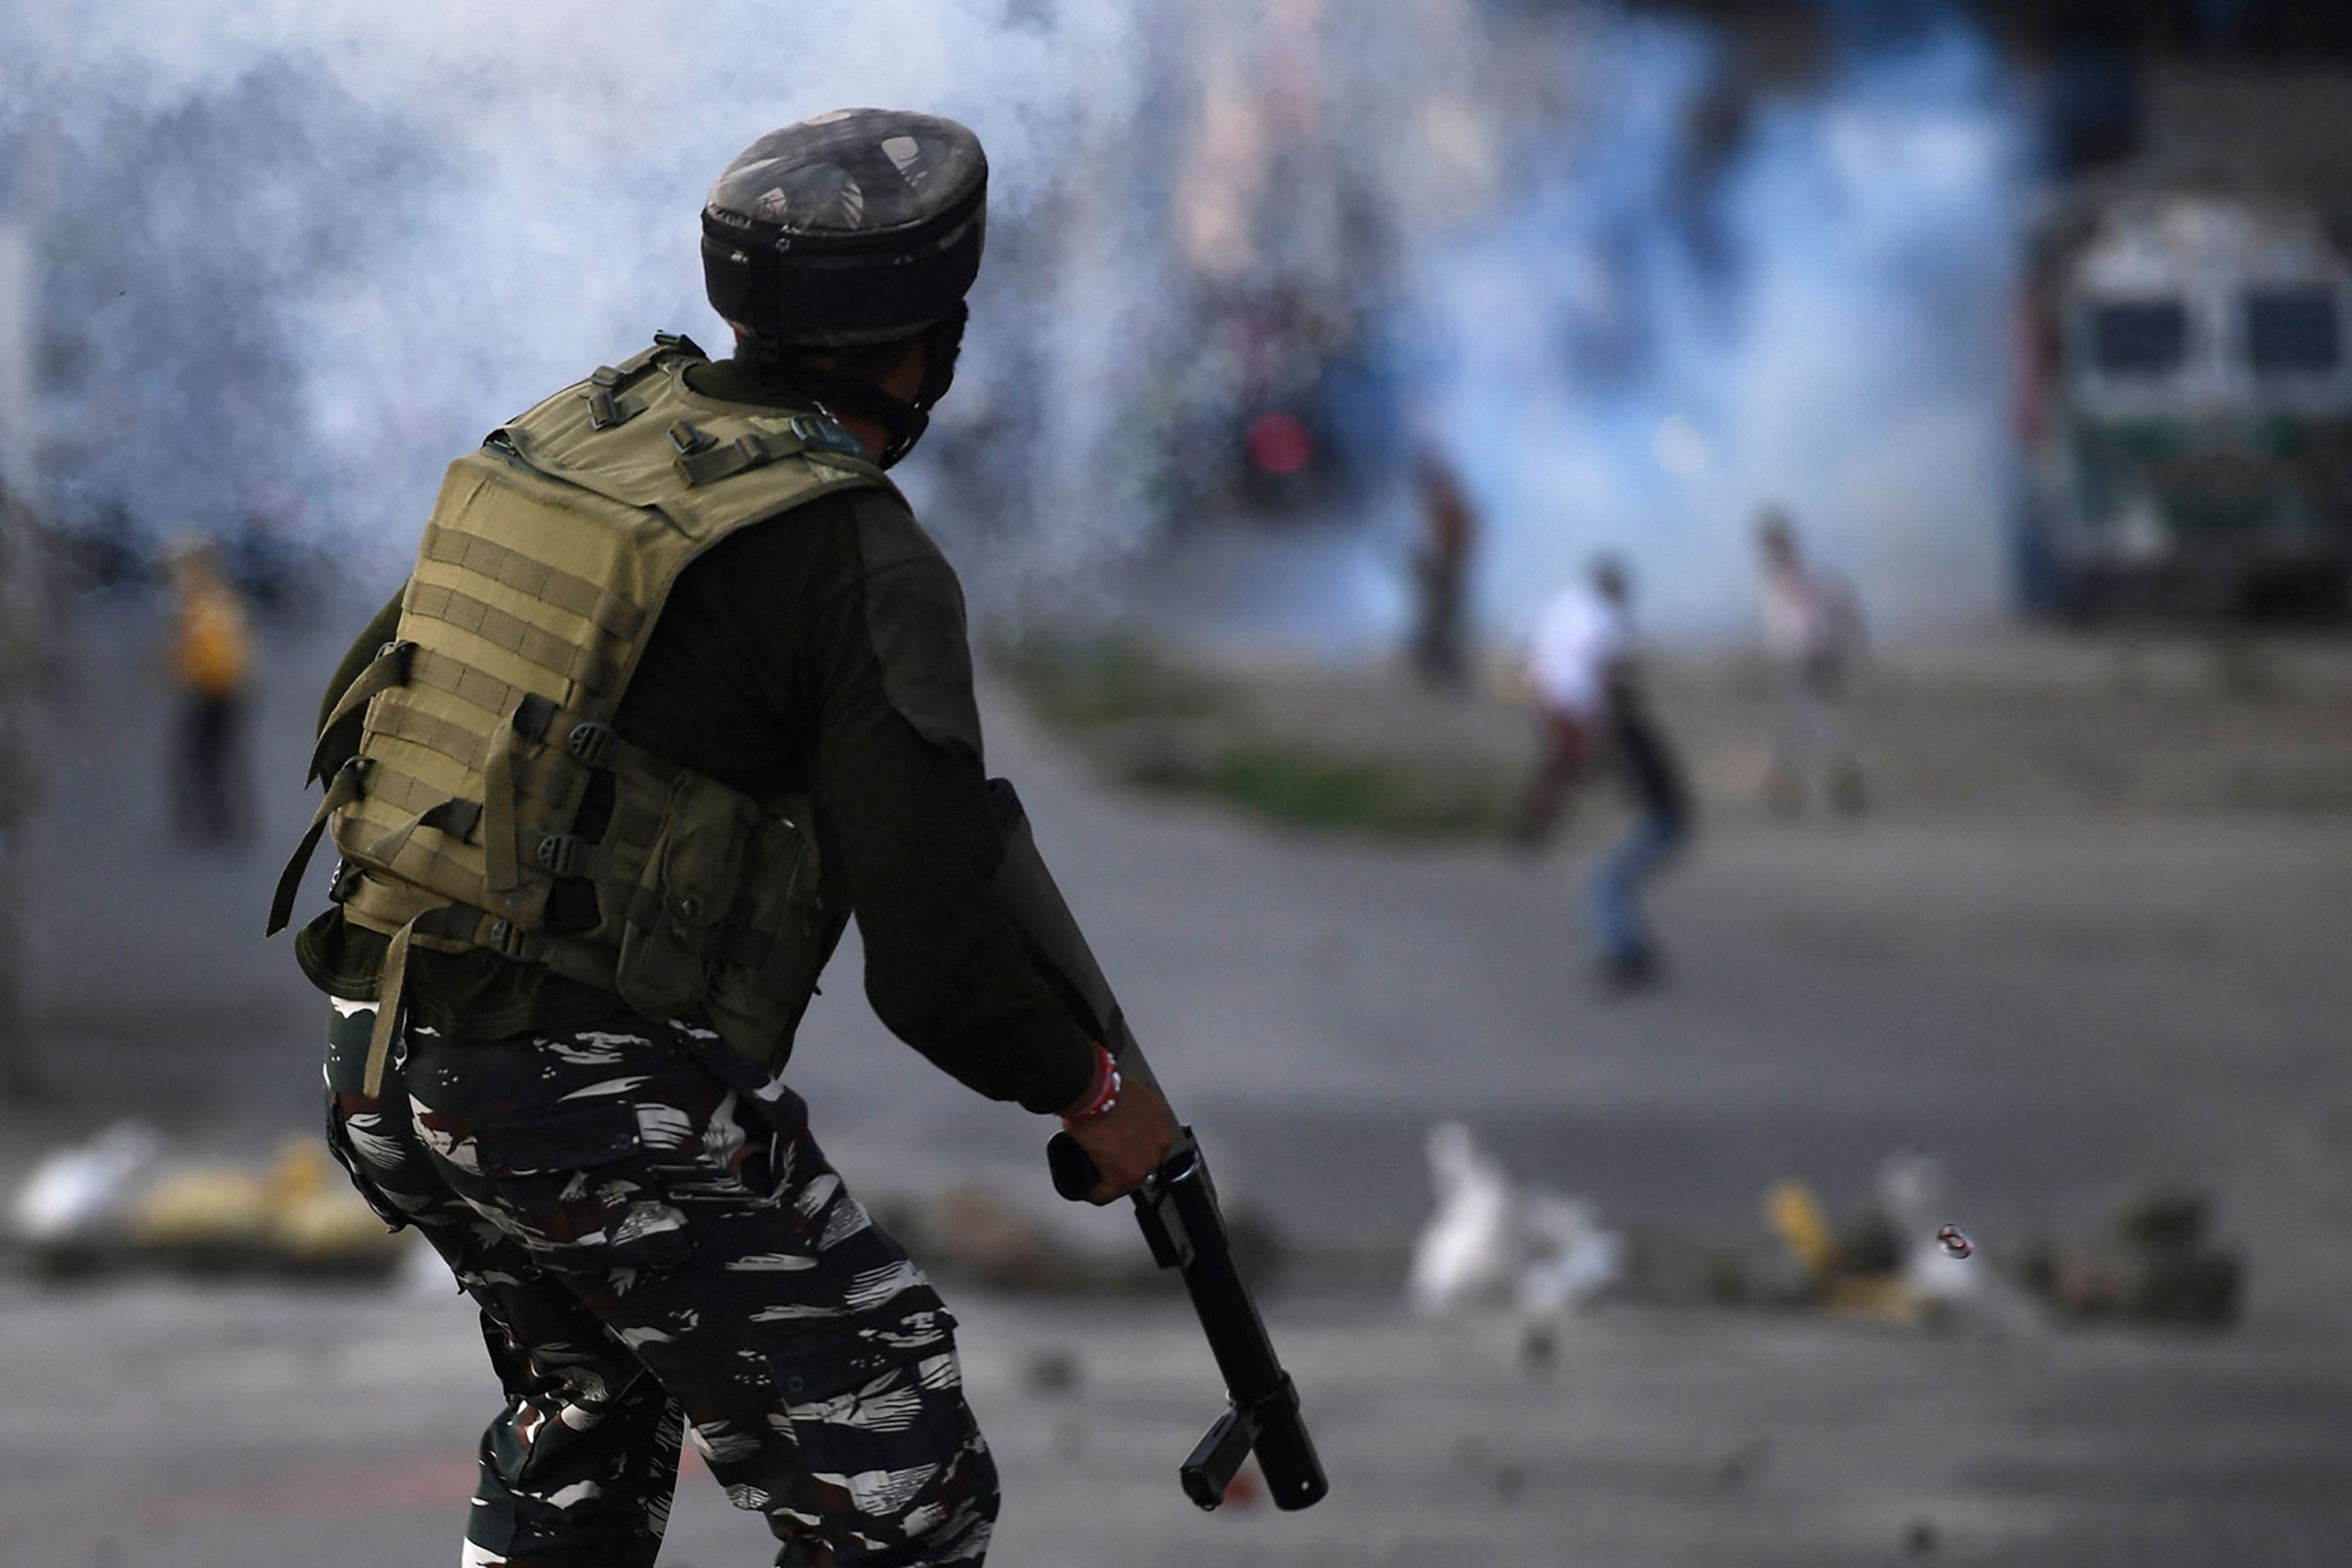 An Indian government security force personnel watches after firing tear gas in an attempt to disperse Kashmiri protesters during a clash in Srinagar, Indian-controlled Kashmir on Sept. 2, 2021 (AFP Photo)